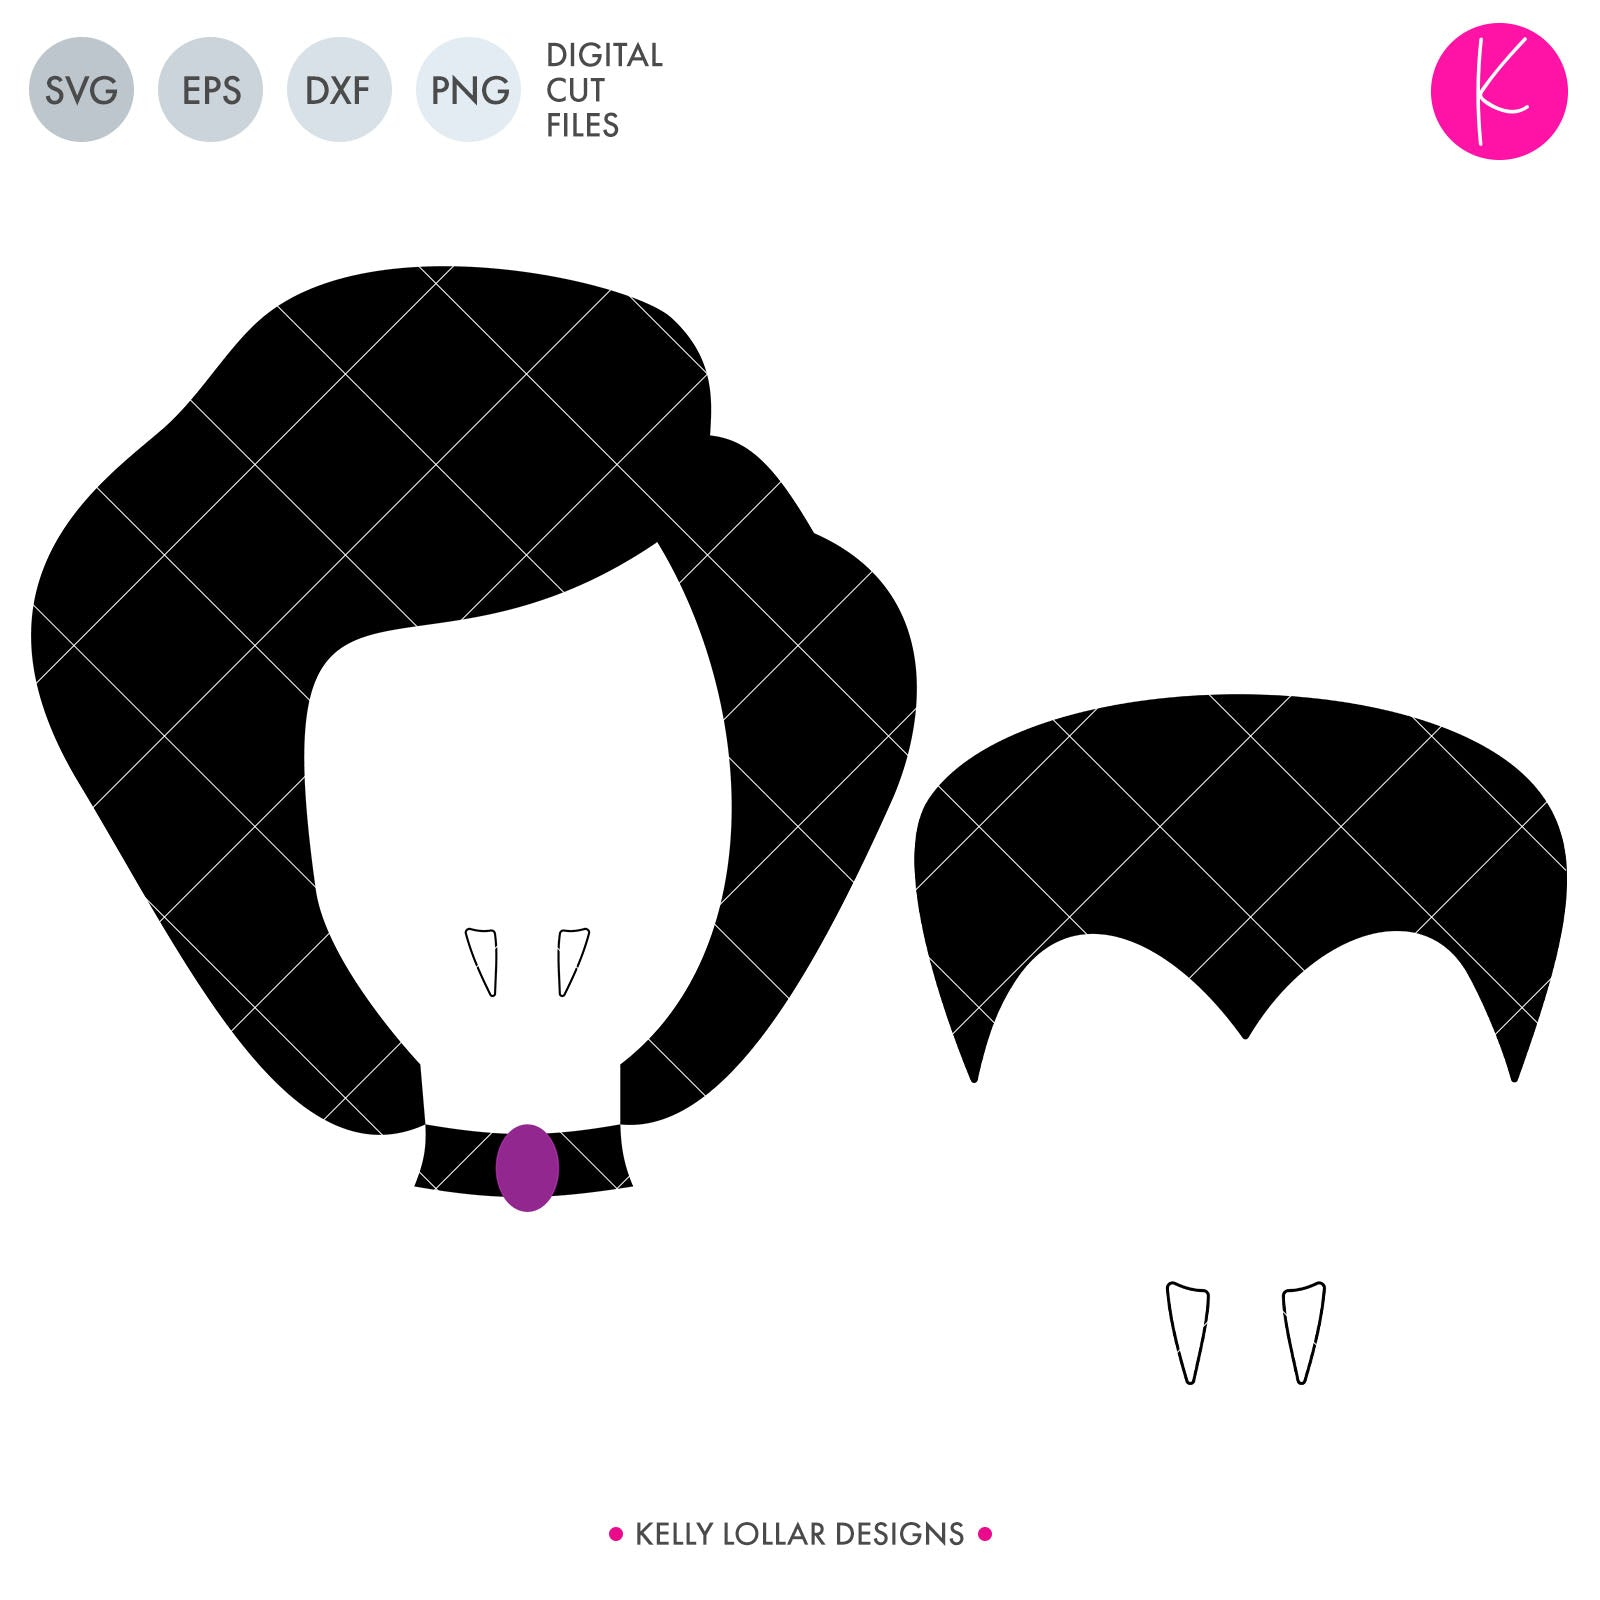 Vampires | SVG DXF EPS PNG Cut Files Boy and Girl Vampire Face for Brother and Sister or Couples Halloween Shirts and Decor | SVG DXF EPS PNG Cut Files This cute set of male and female vampire